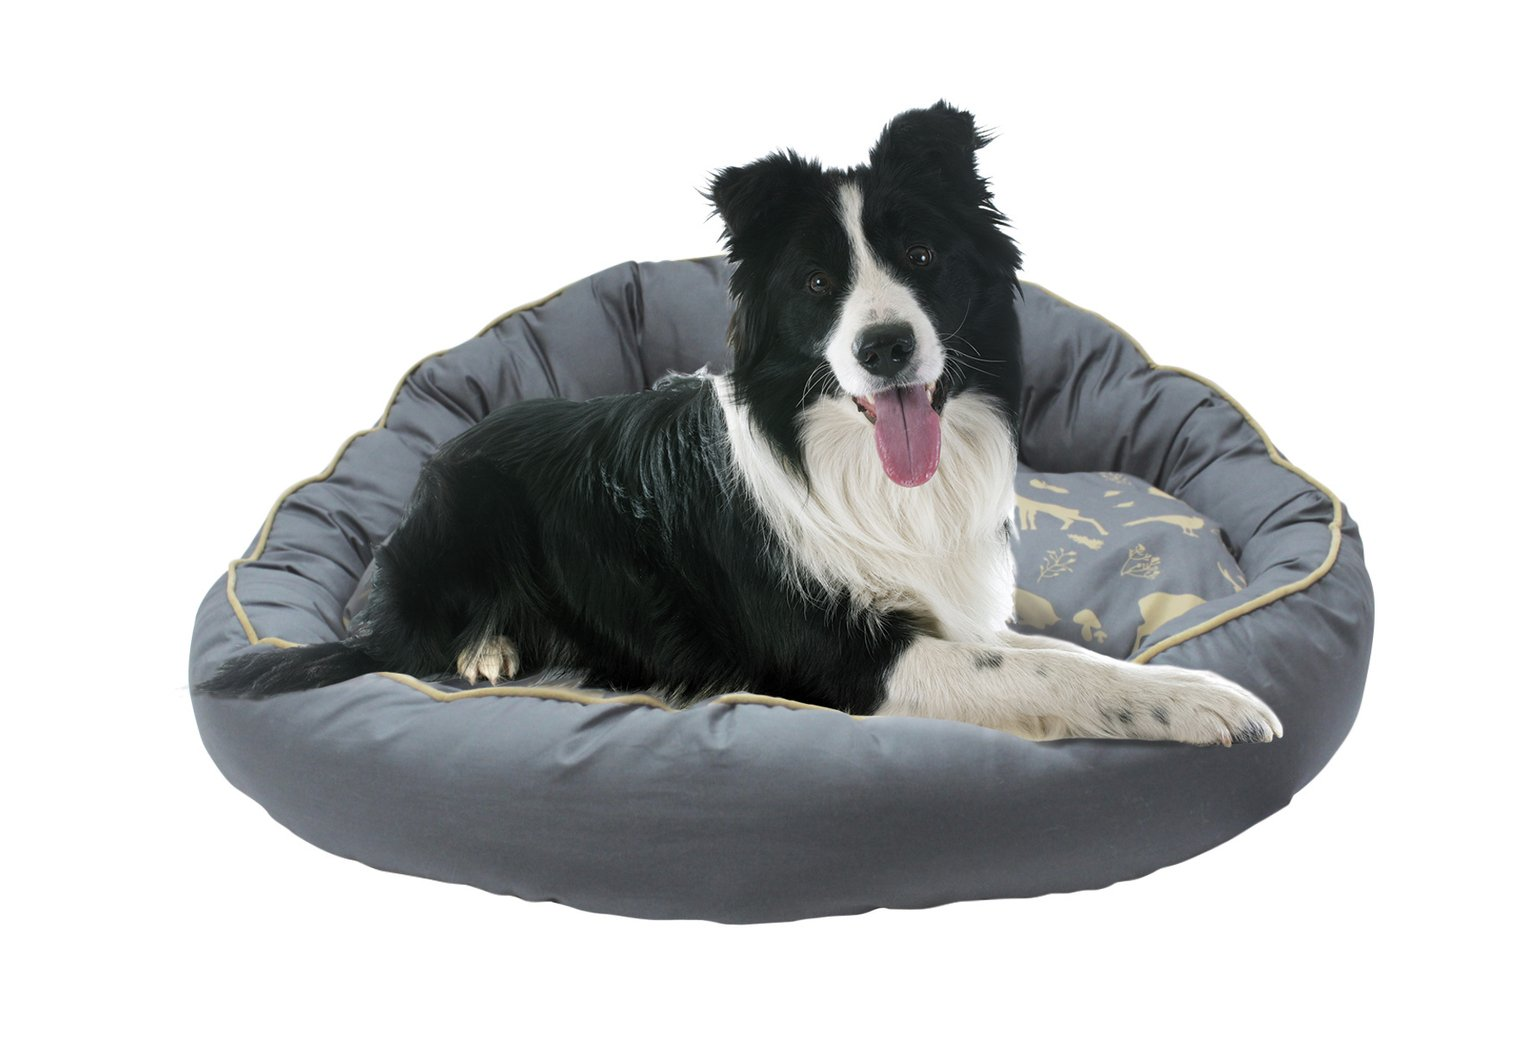 Forest Orthopaedic Foam Donut Bed - Large